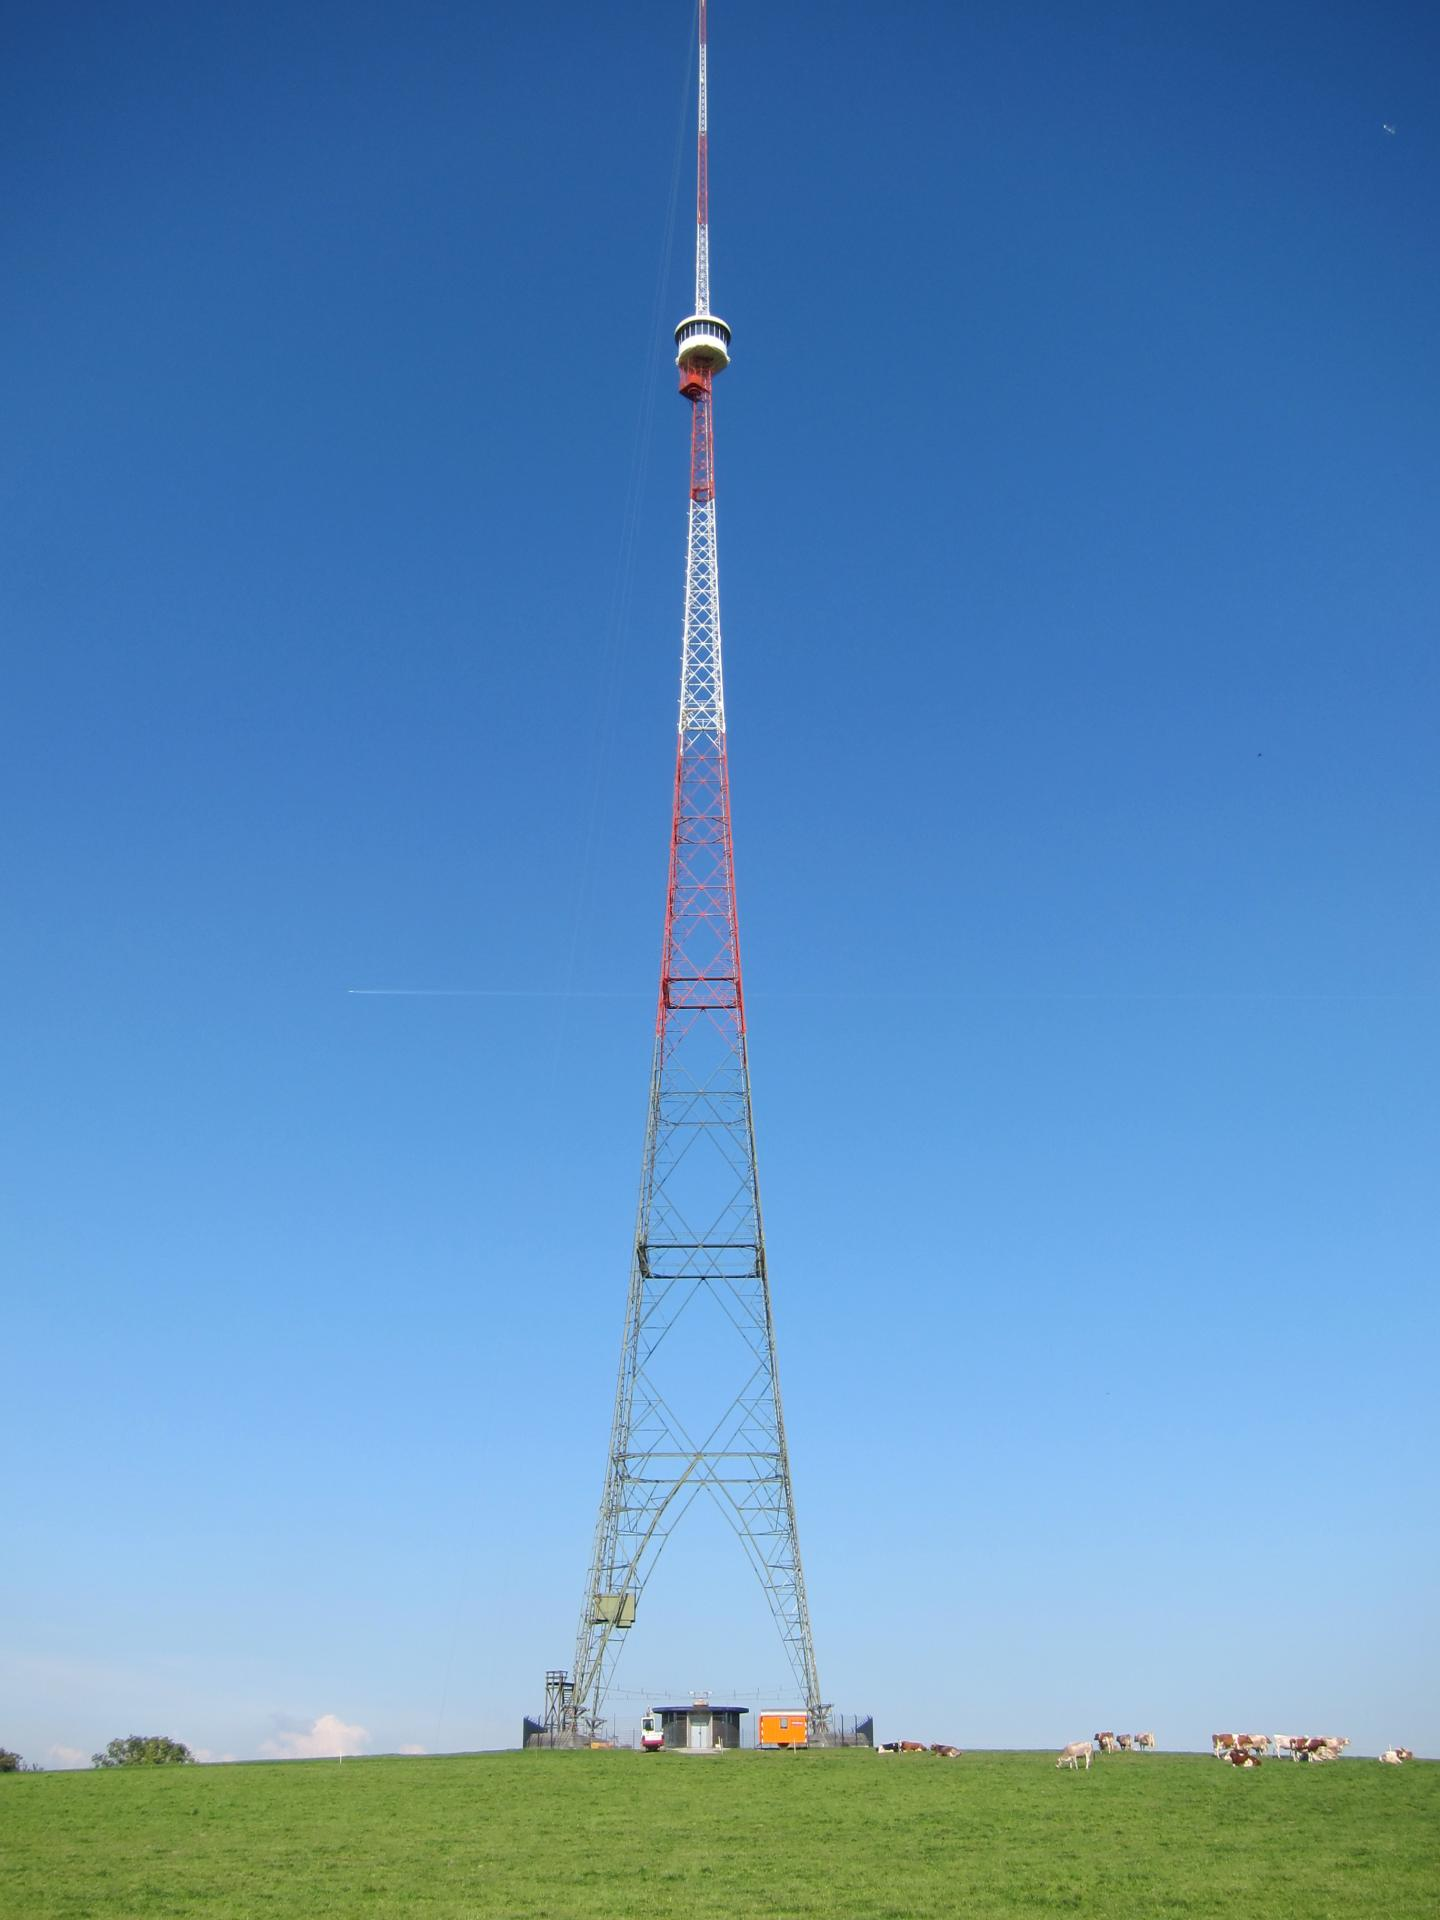 For the model simulations, data from various measuring stations in Switzerland were integrated. Eg. on the former radio transmission tower at Beromünster (canton of Lucerne). CREDIT Empa